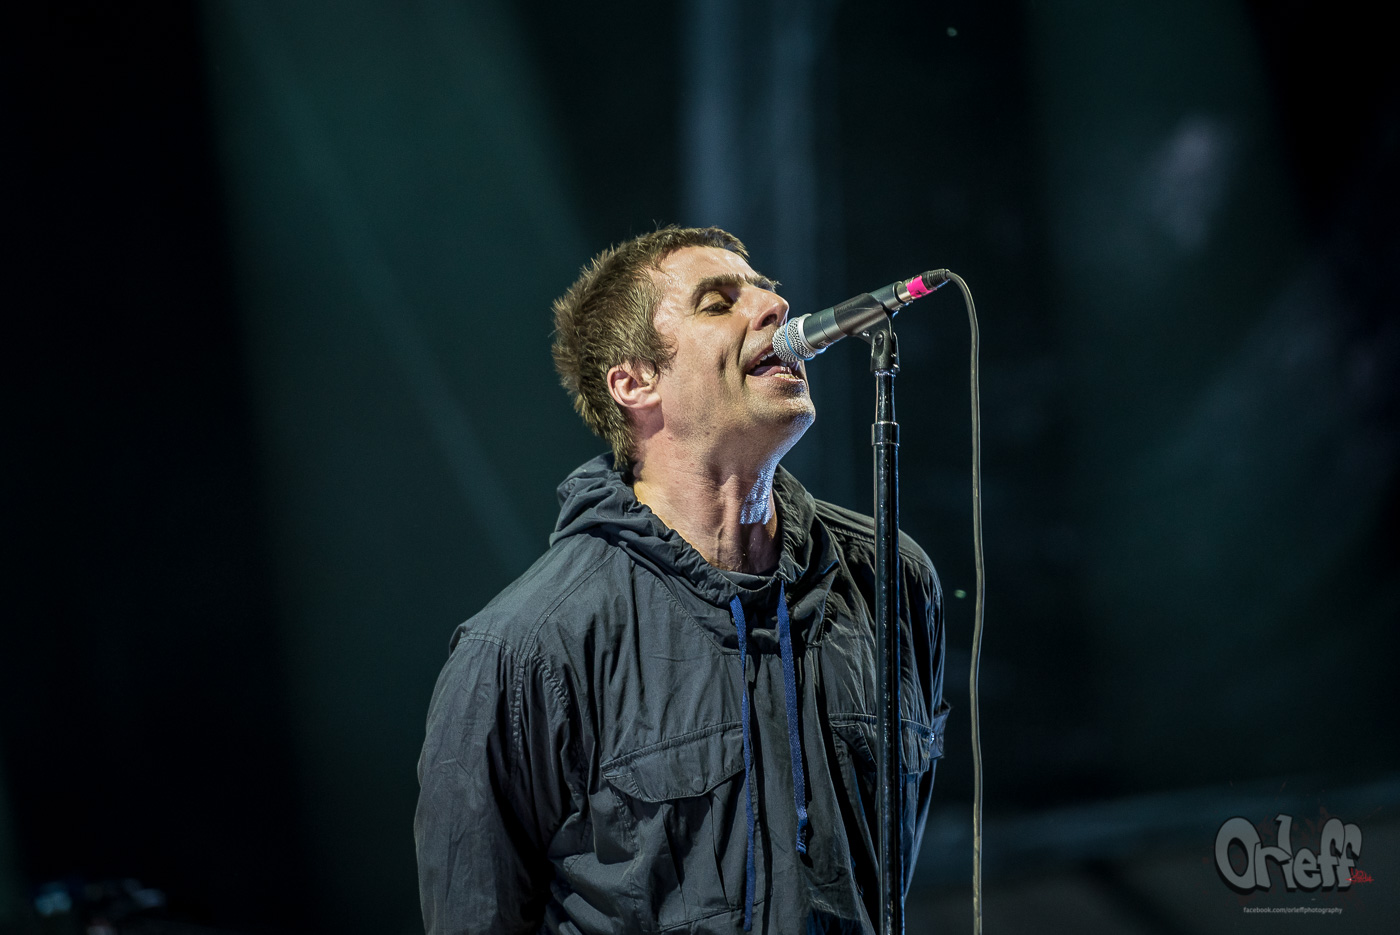 Liam Gallagher – Once